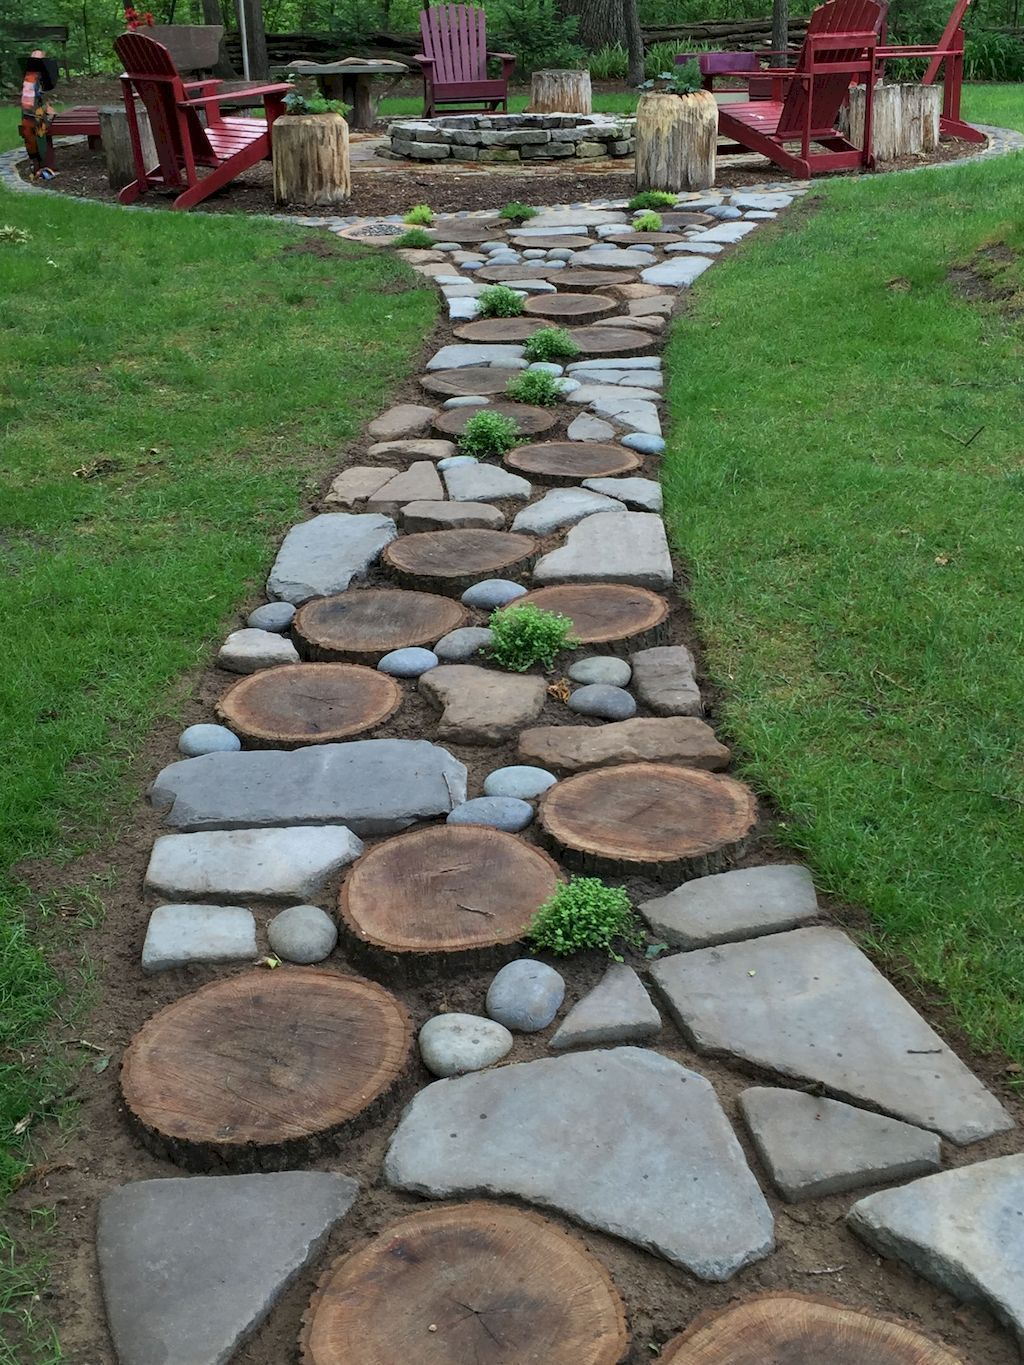 Natural garden walk ways from large stones and flagged stones Part 27 | Elonahome.com